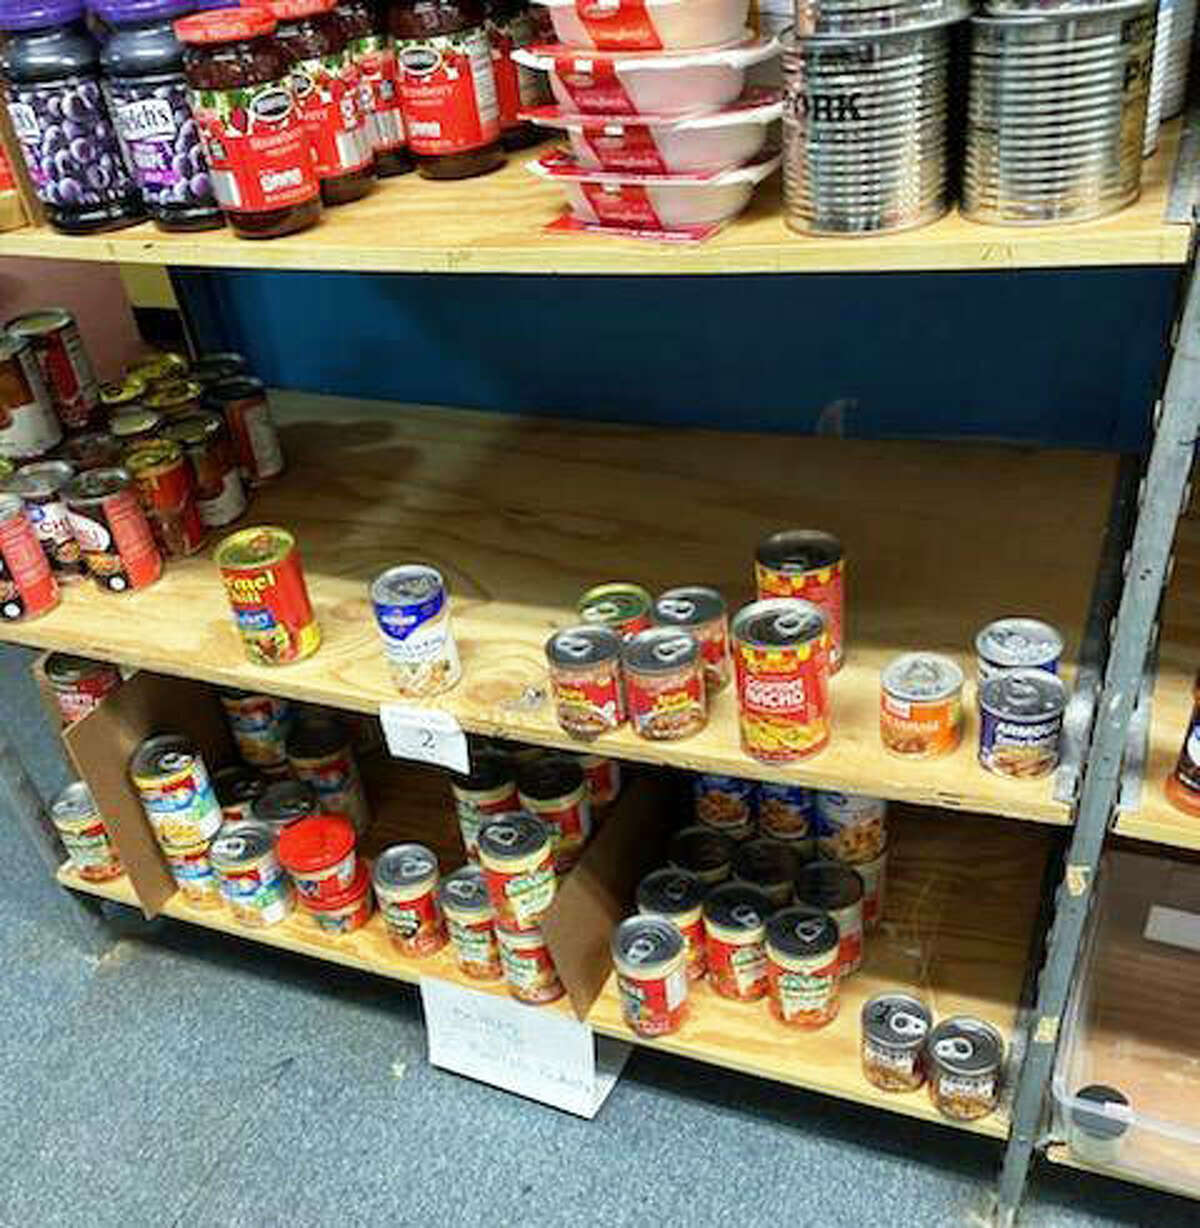 Some of the food shelves at Glen-Ed Pantry are starting to look bare. Director of Development Jane Ahasay said the pantry is especially looking for food items for summer barbecues.